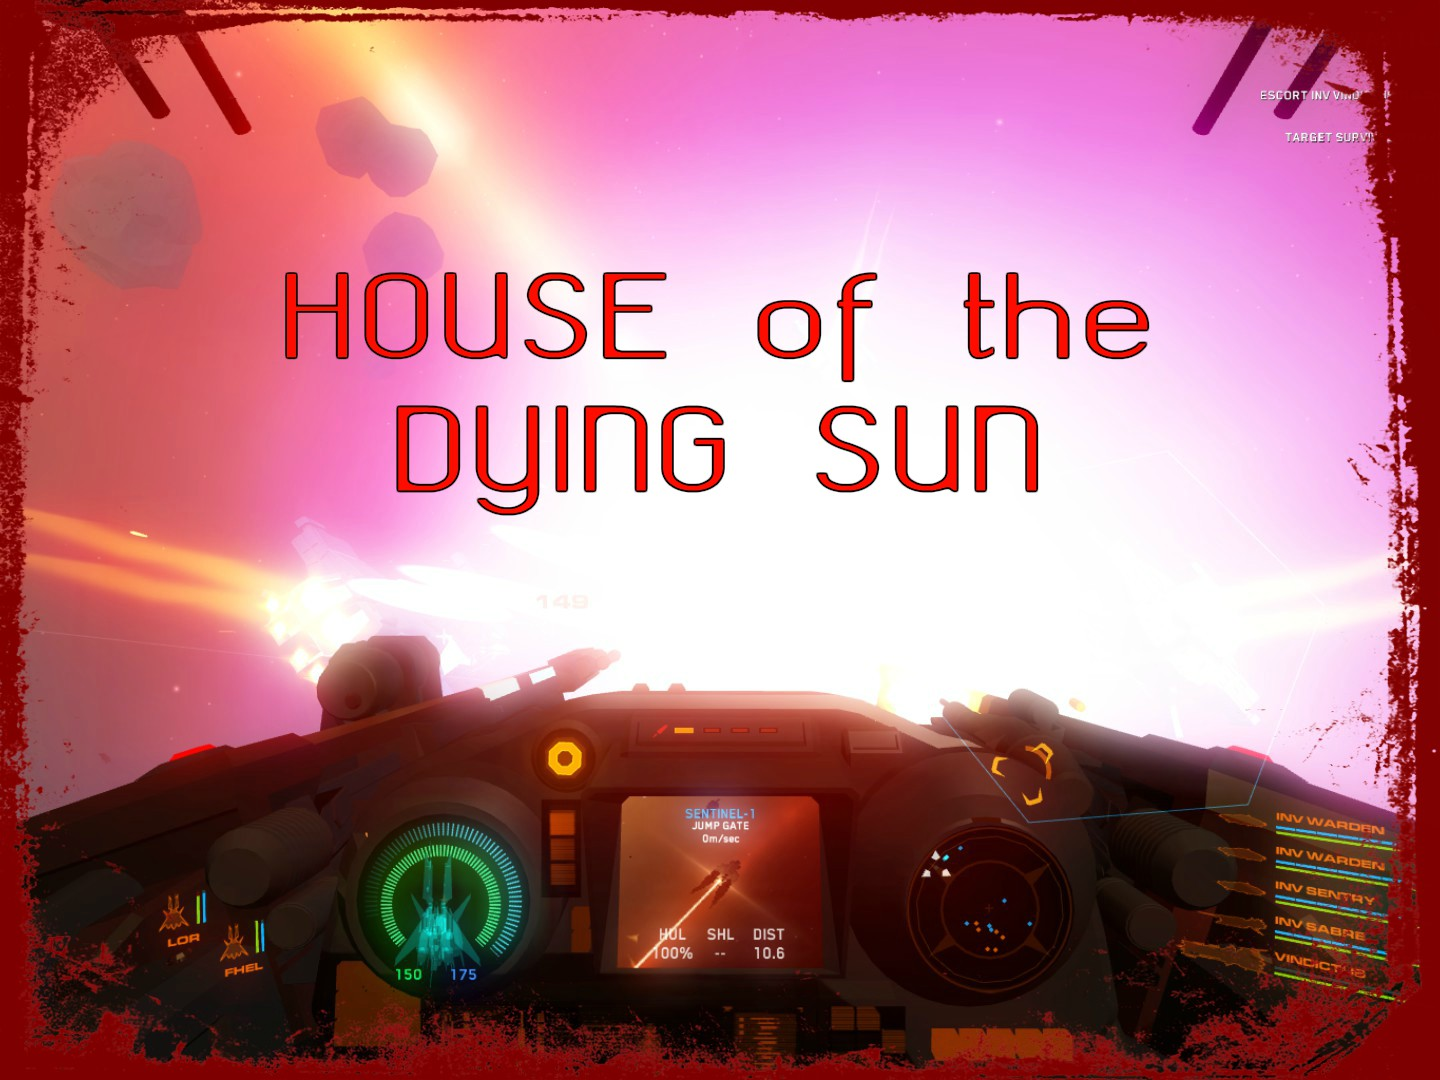 House of the Dying Sun, Marauder Interactive, LLC , 2016